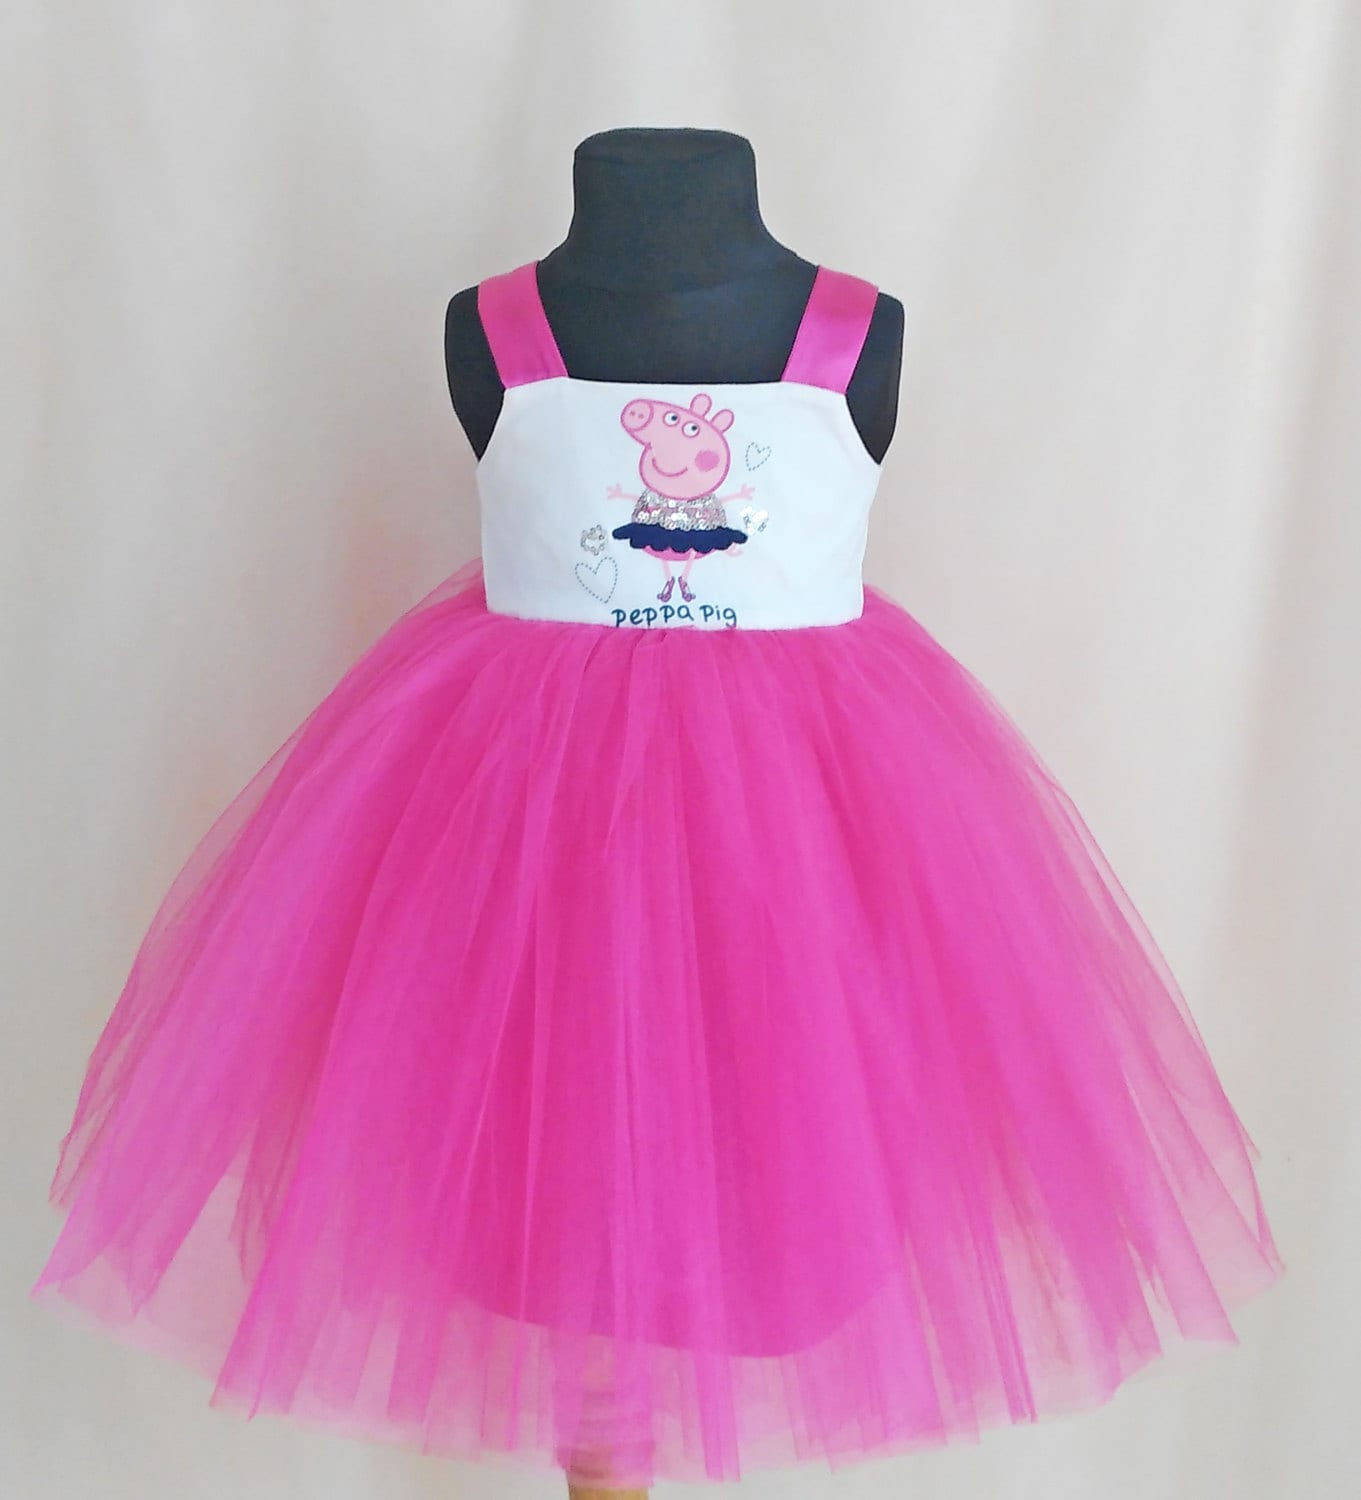 Soft Pink Tulle Peppa Pig Ballerina Dress Birthday Dress With # Muebles De Peppa Pig